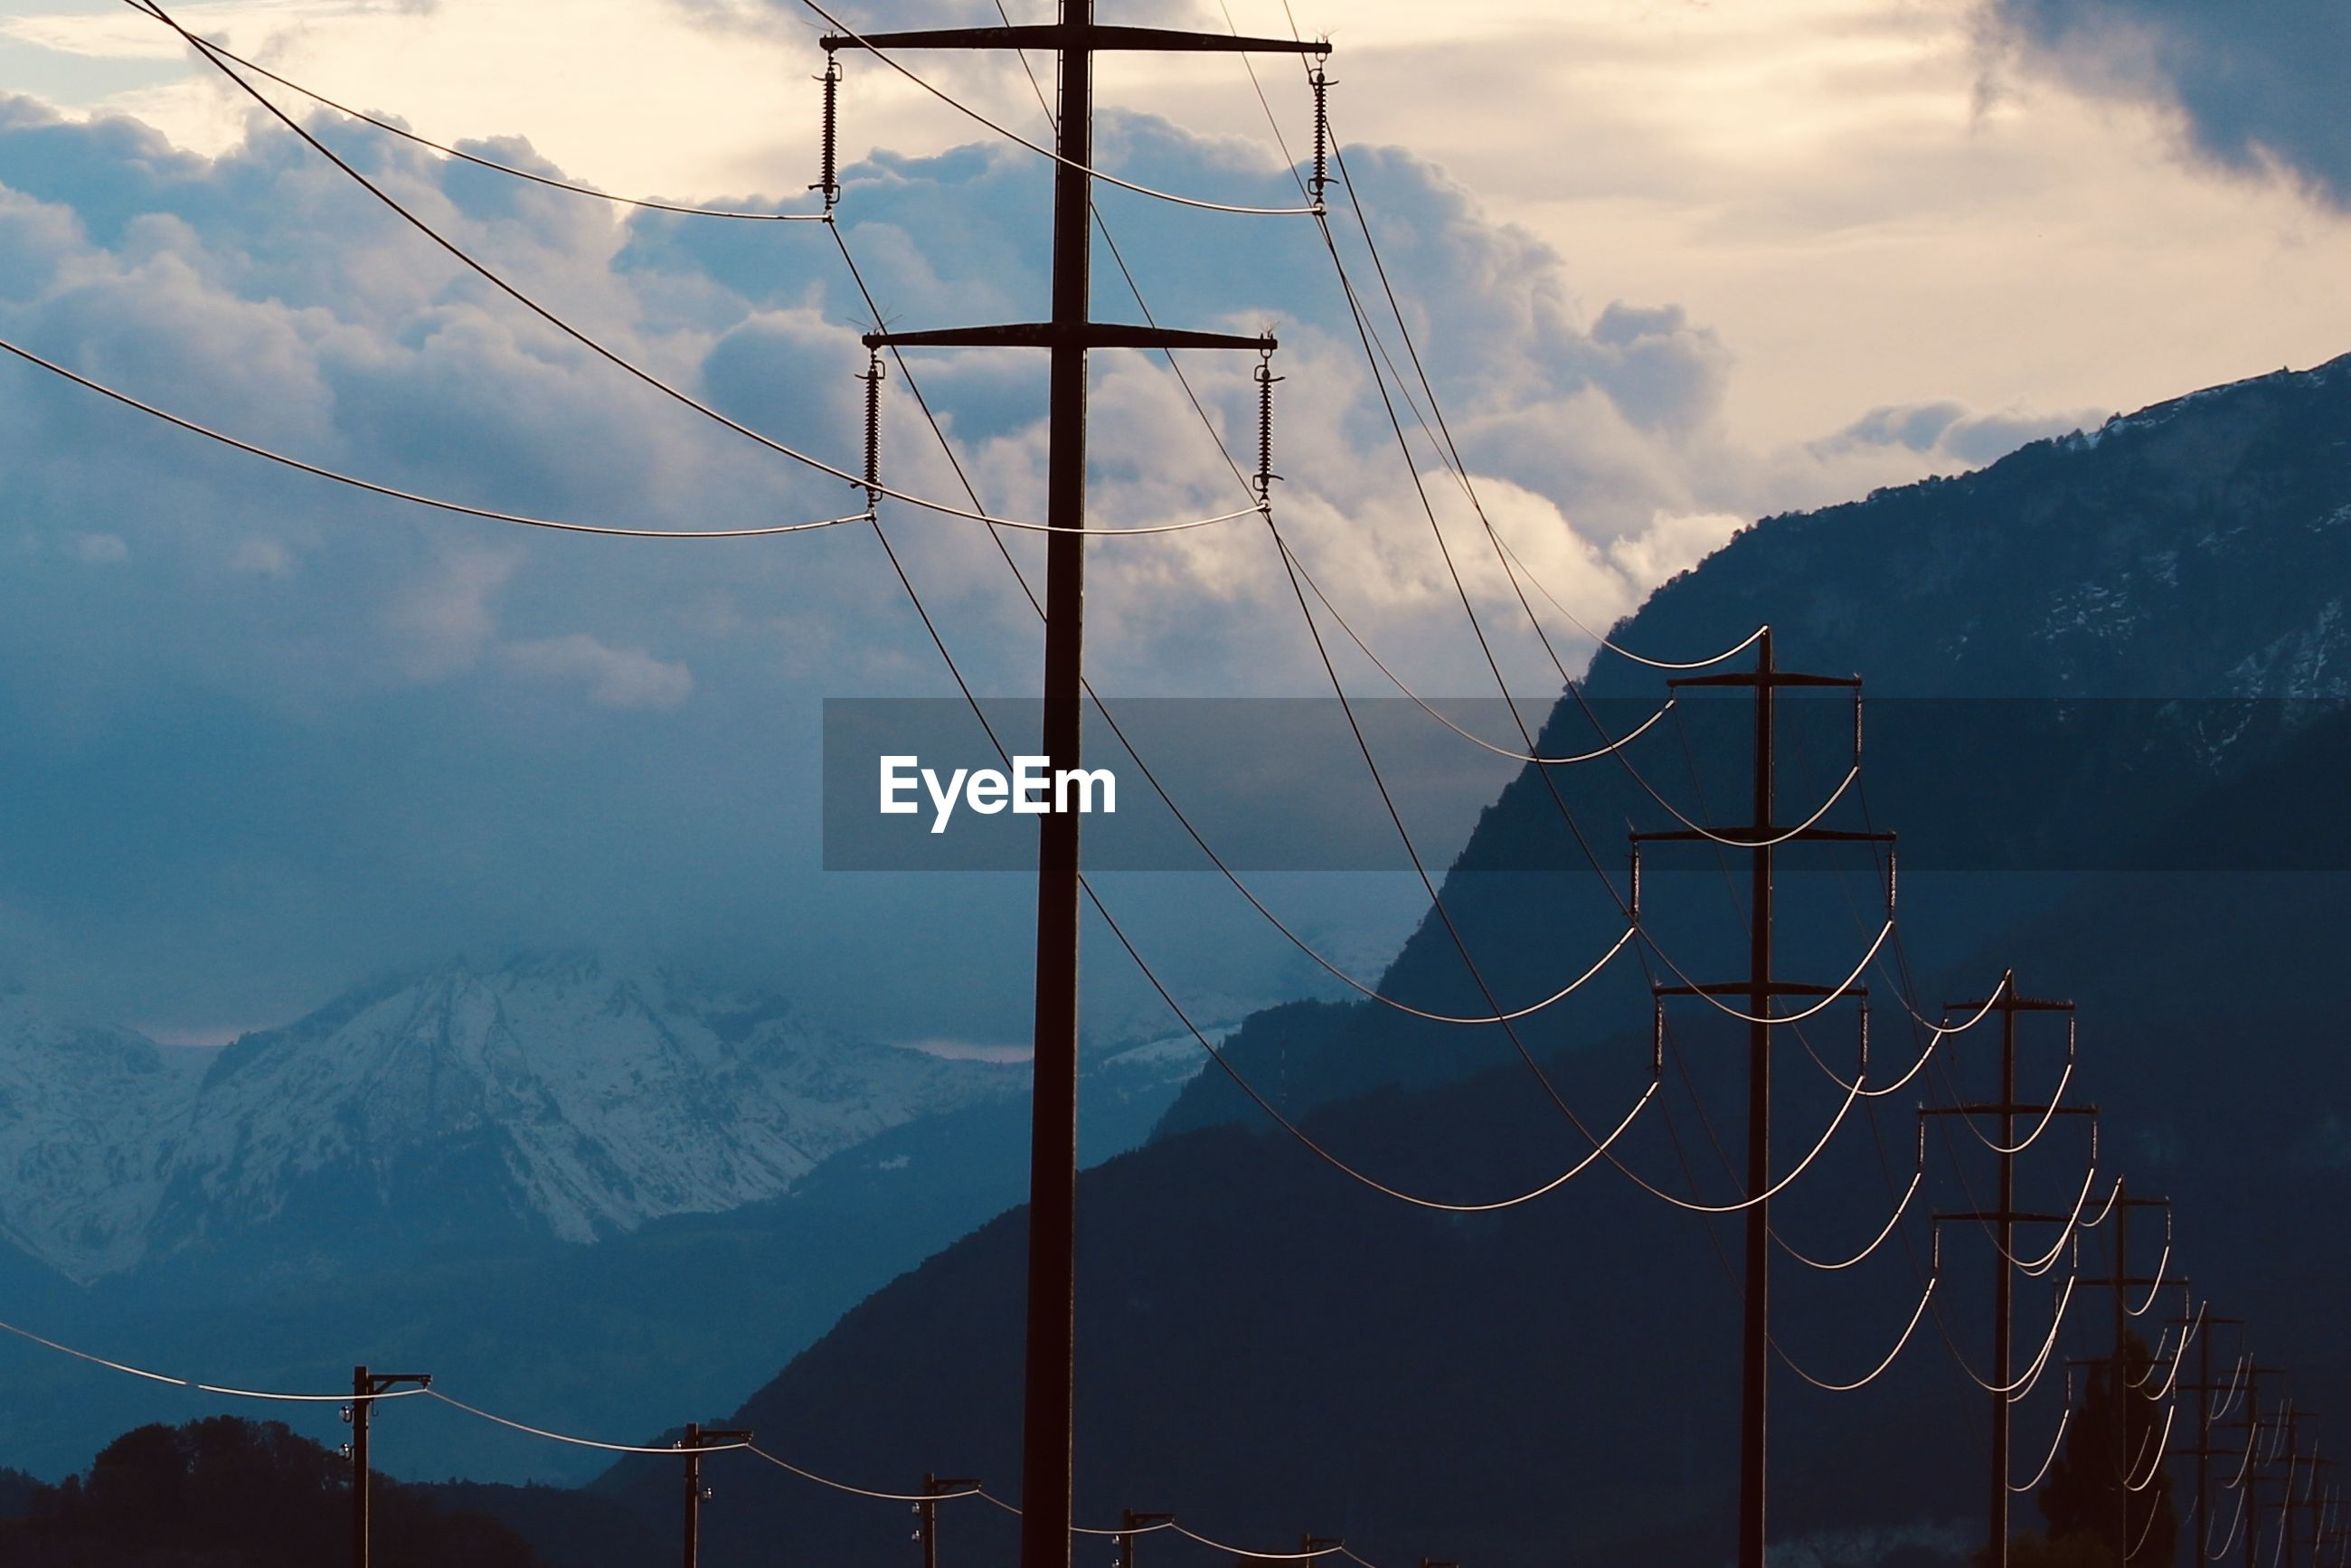 ELECTRICITY PYLON BY SNOWCAPPED MOUNTAINS AGAINST SKY DURING WINTER